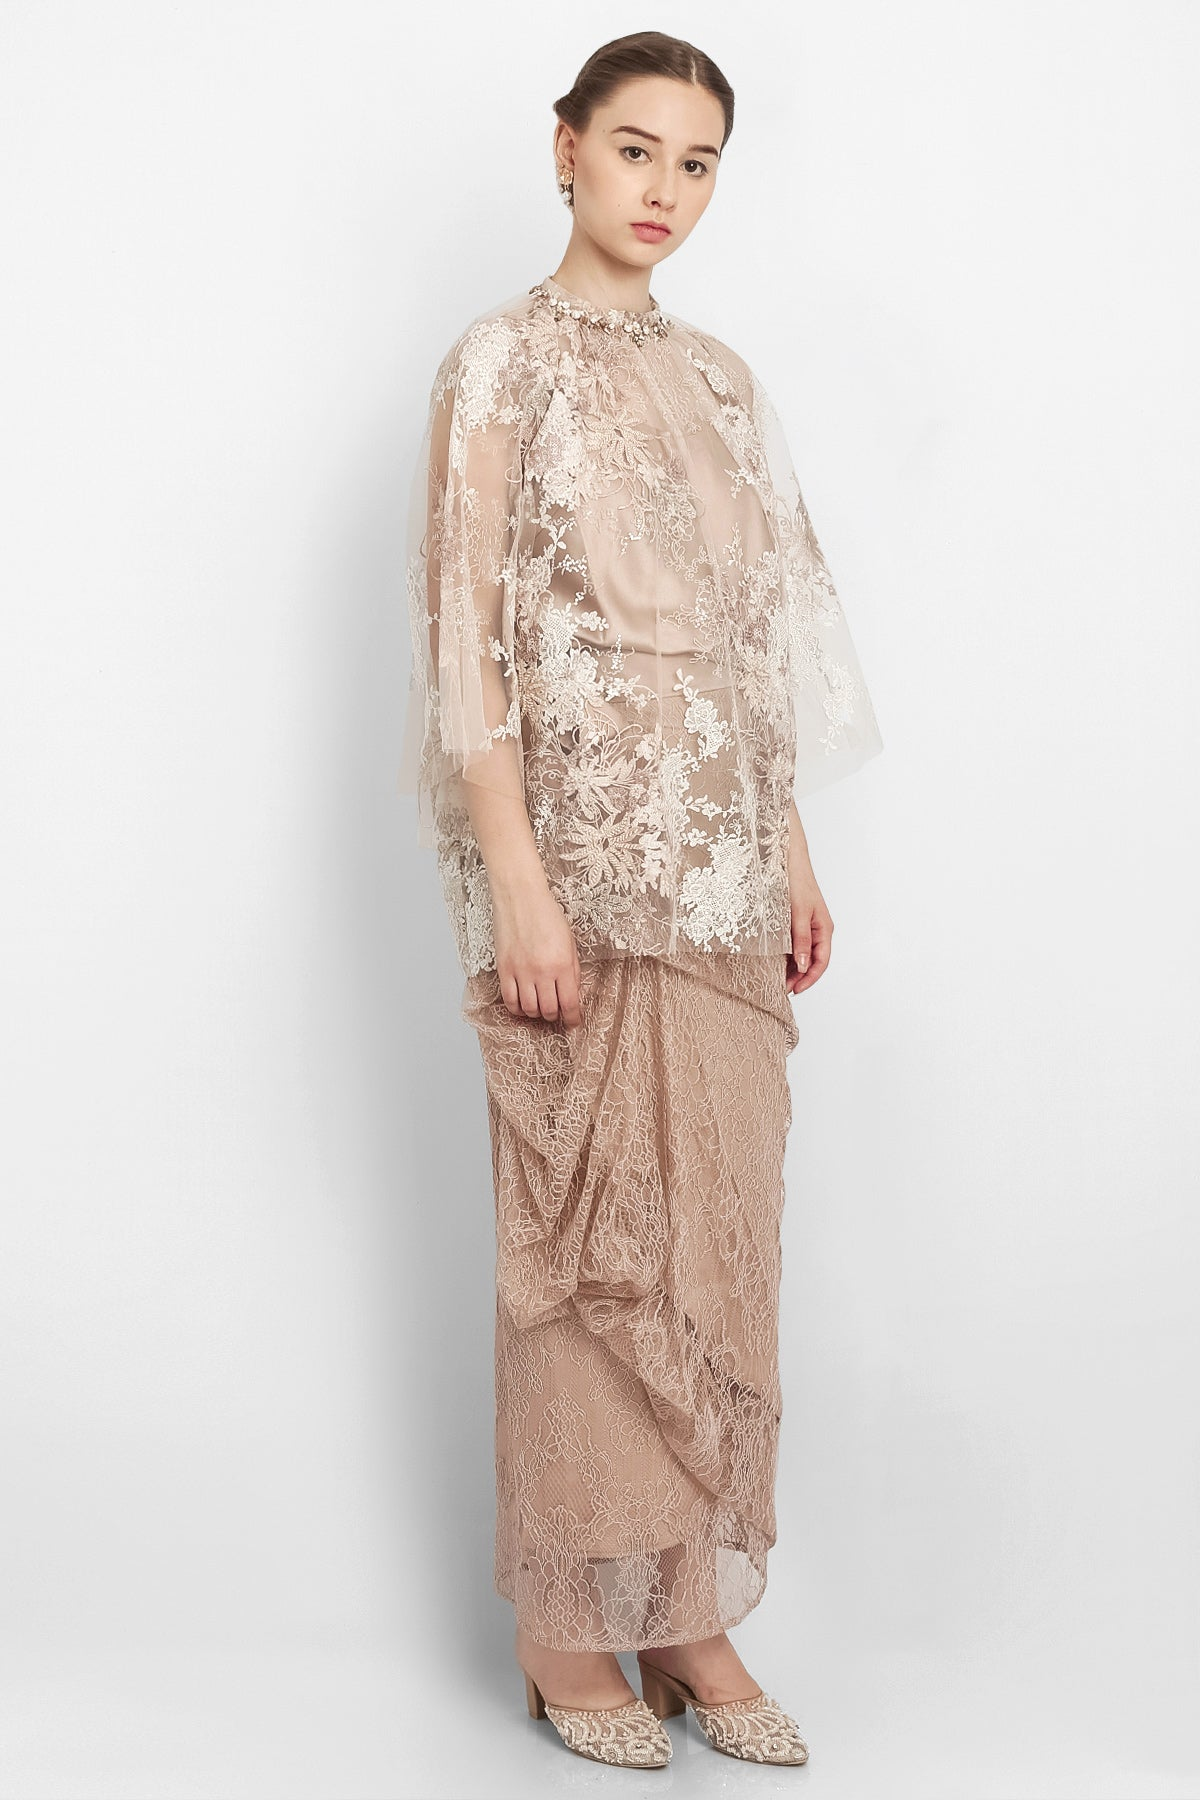 Étienne Layered Top in Nude